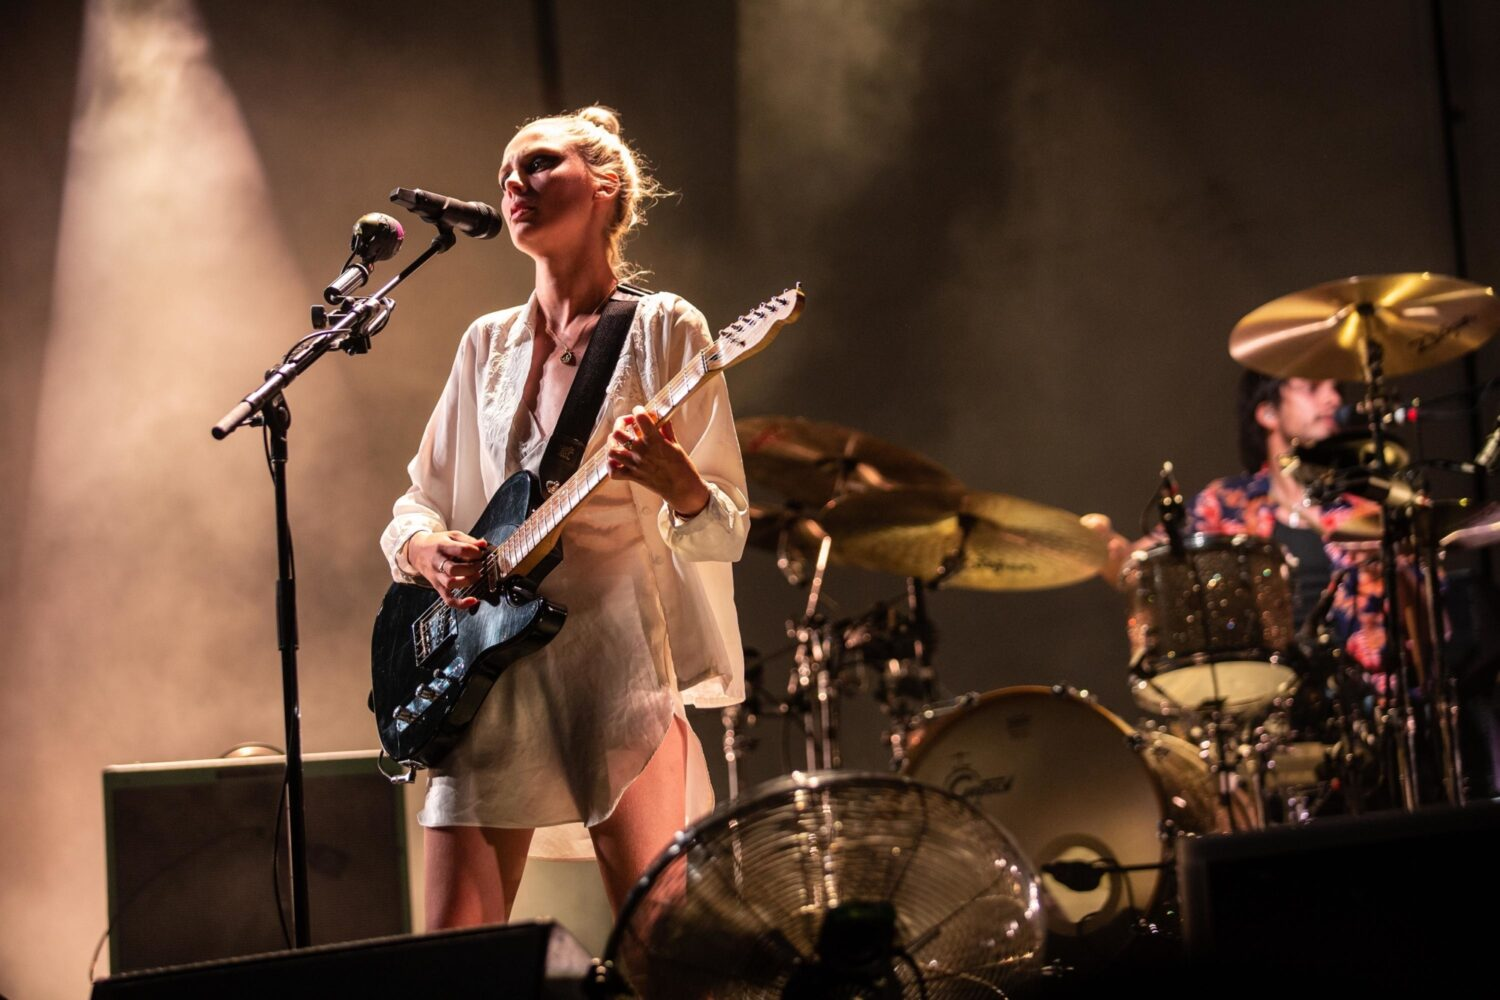 Wolf Alice, Damon Albarn and more to play Glastonbury's 'Live at Worthy Farm' stream